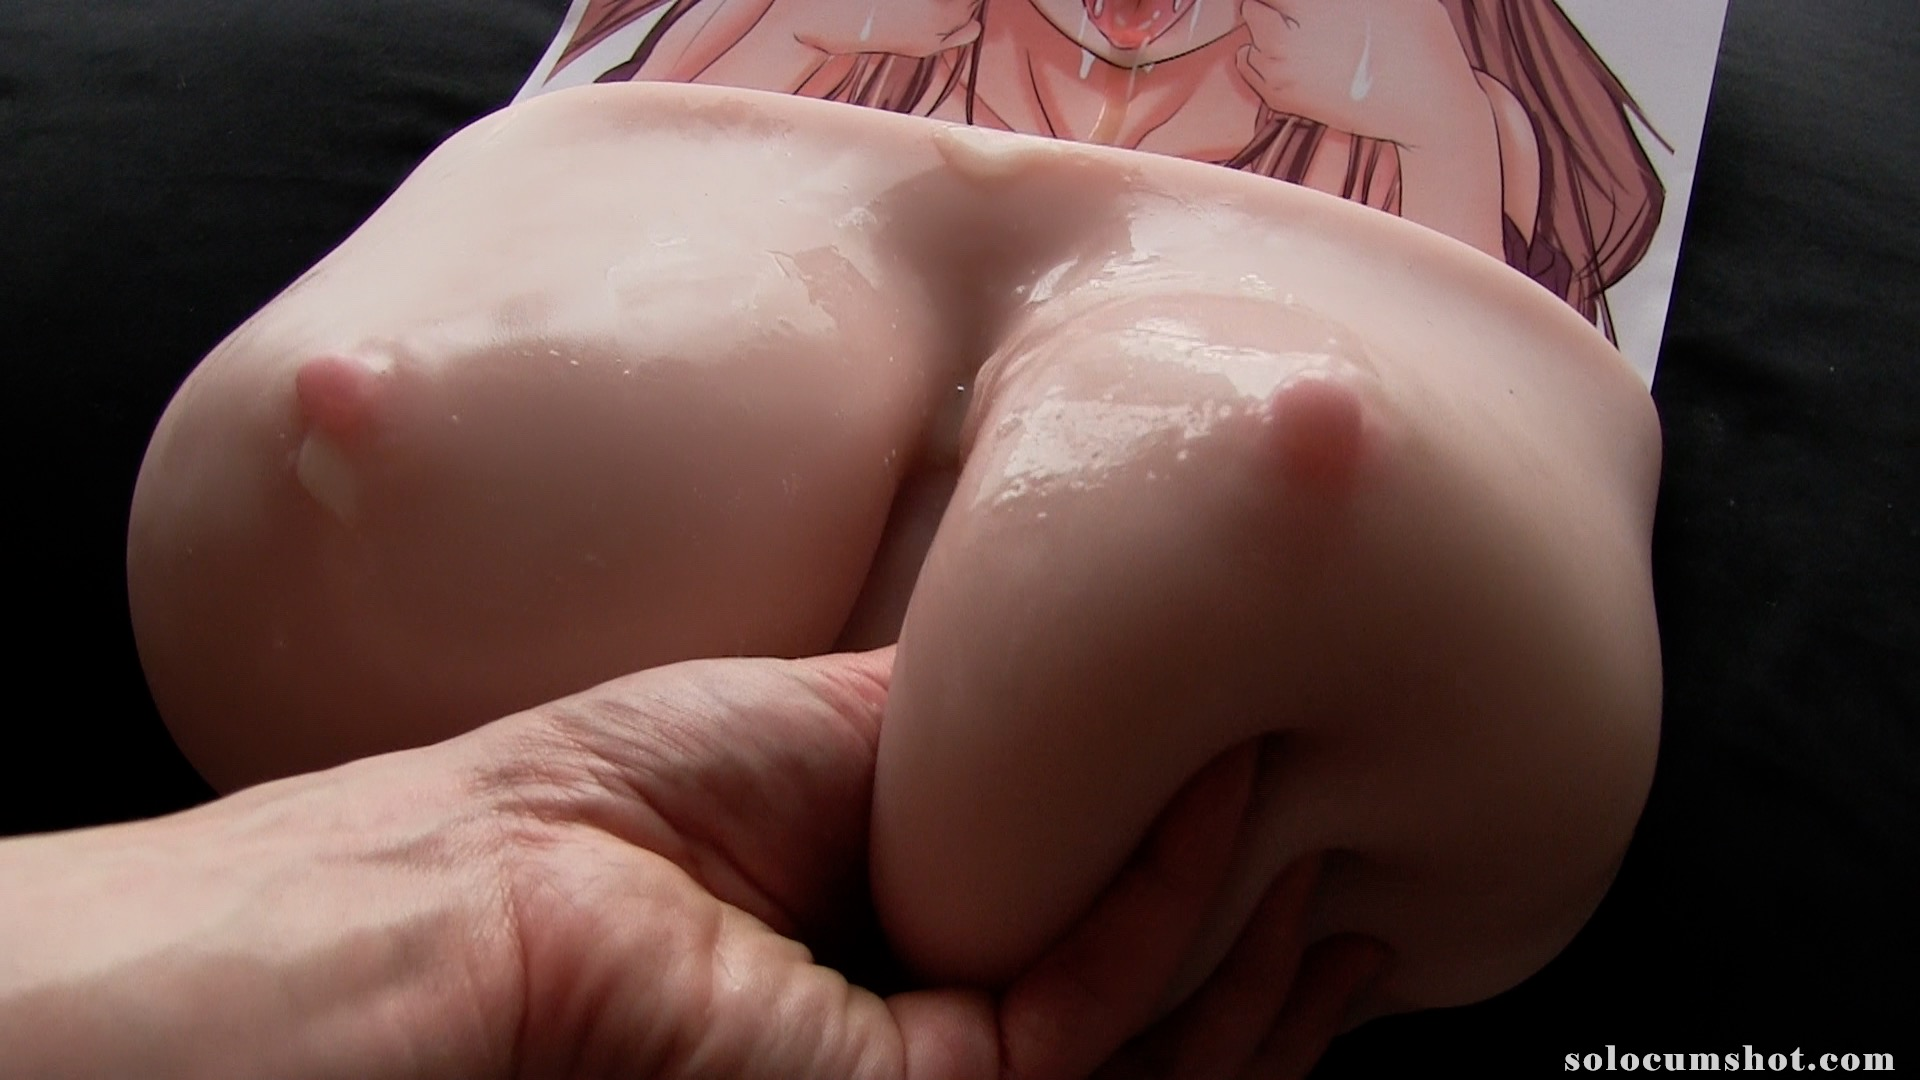 Long distance cum - 1 part 5